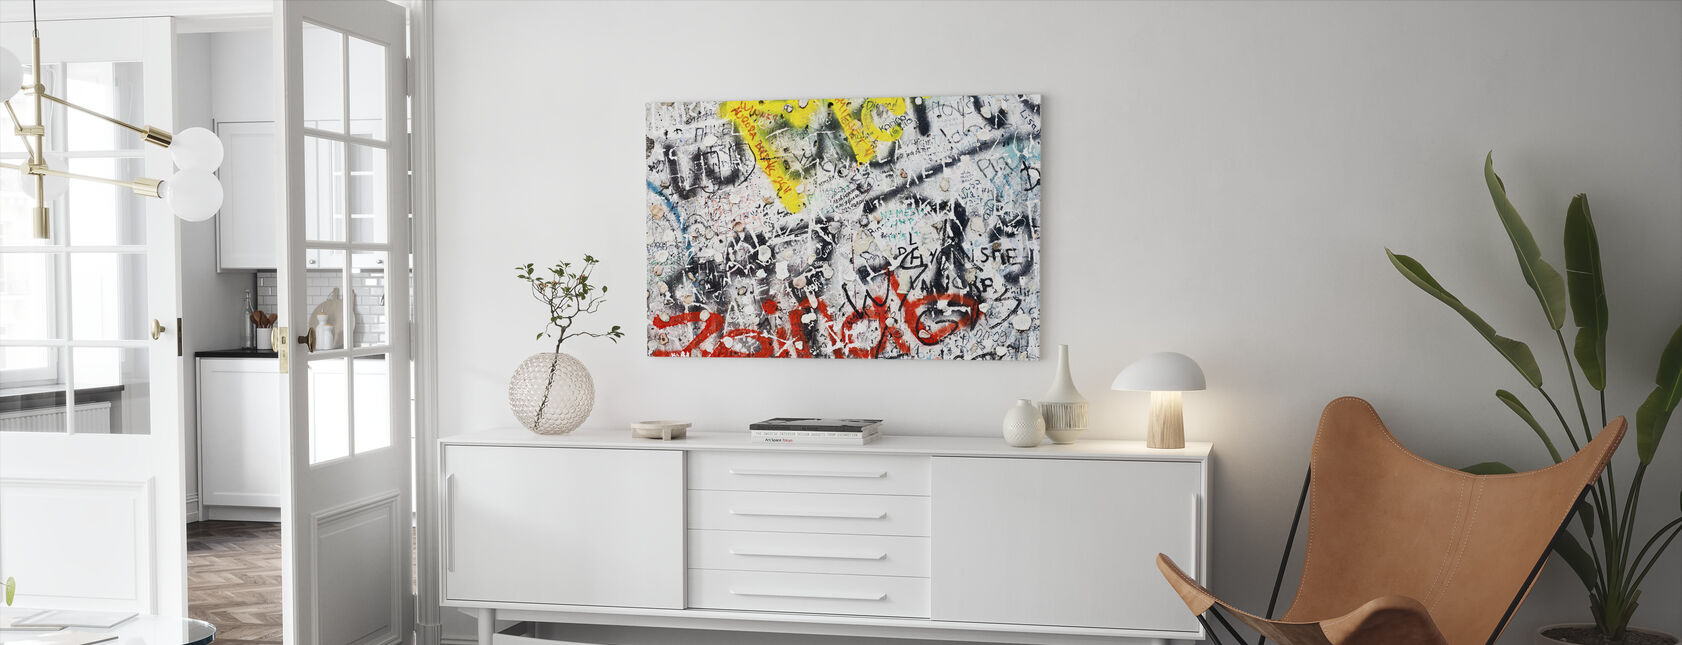 Berlin Wall Graffiti - Canvas print - Living Room